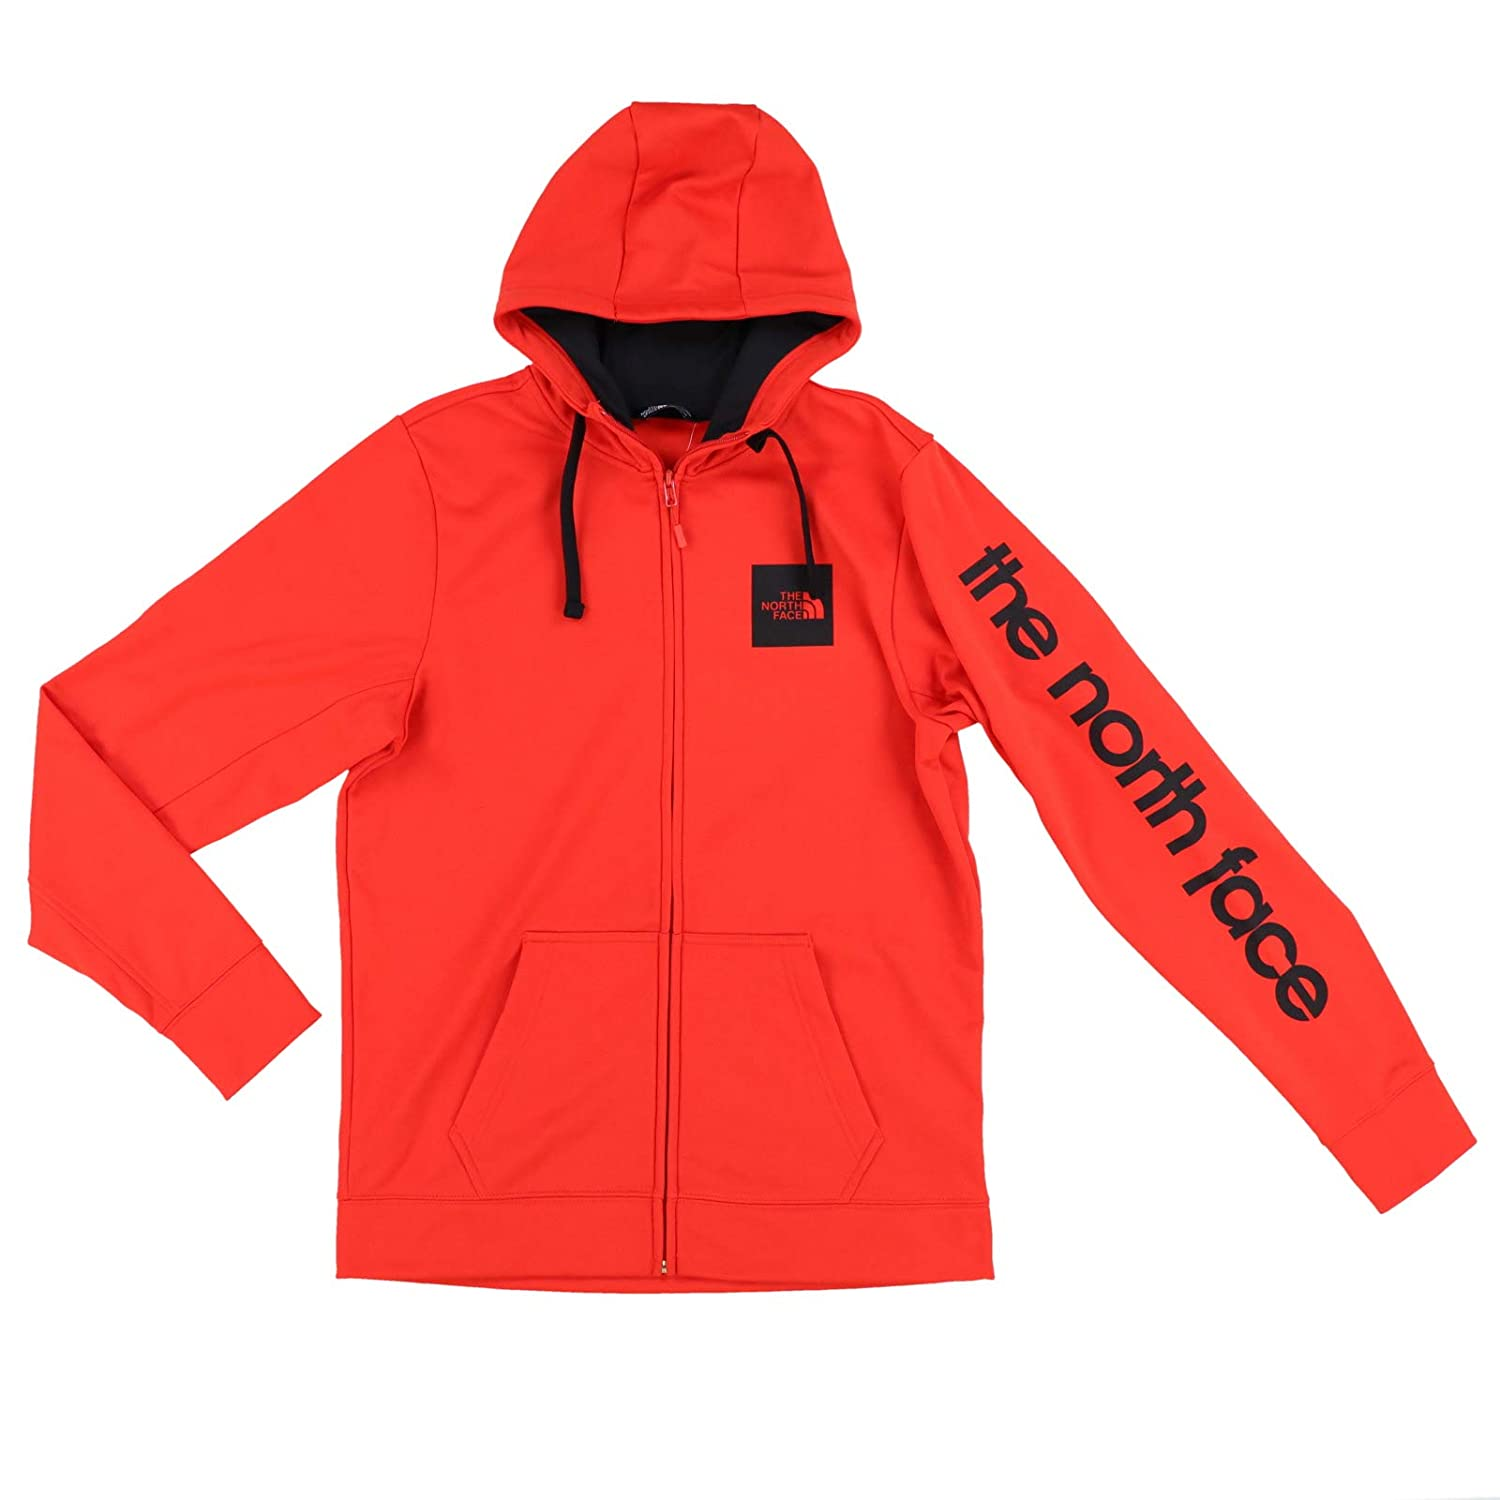 3dae41a25 The North Face Surgent Full Zip Hoodie Sweatshirt Jacket at Amazon ...